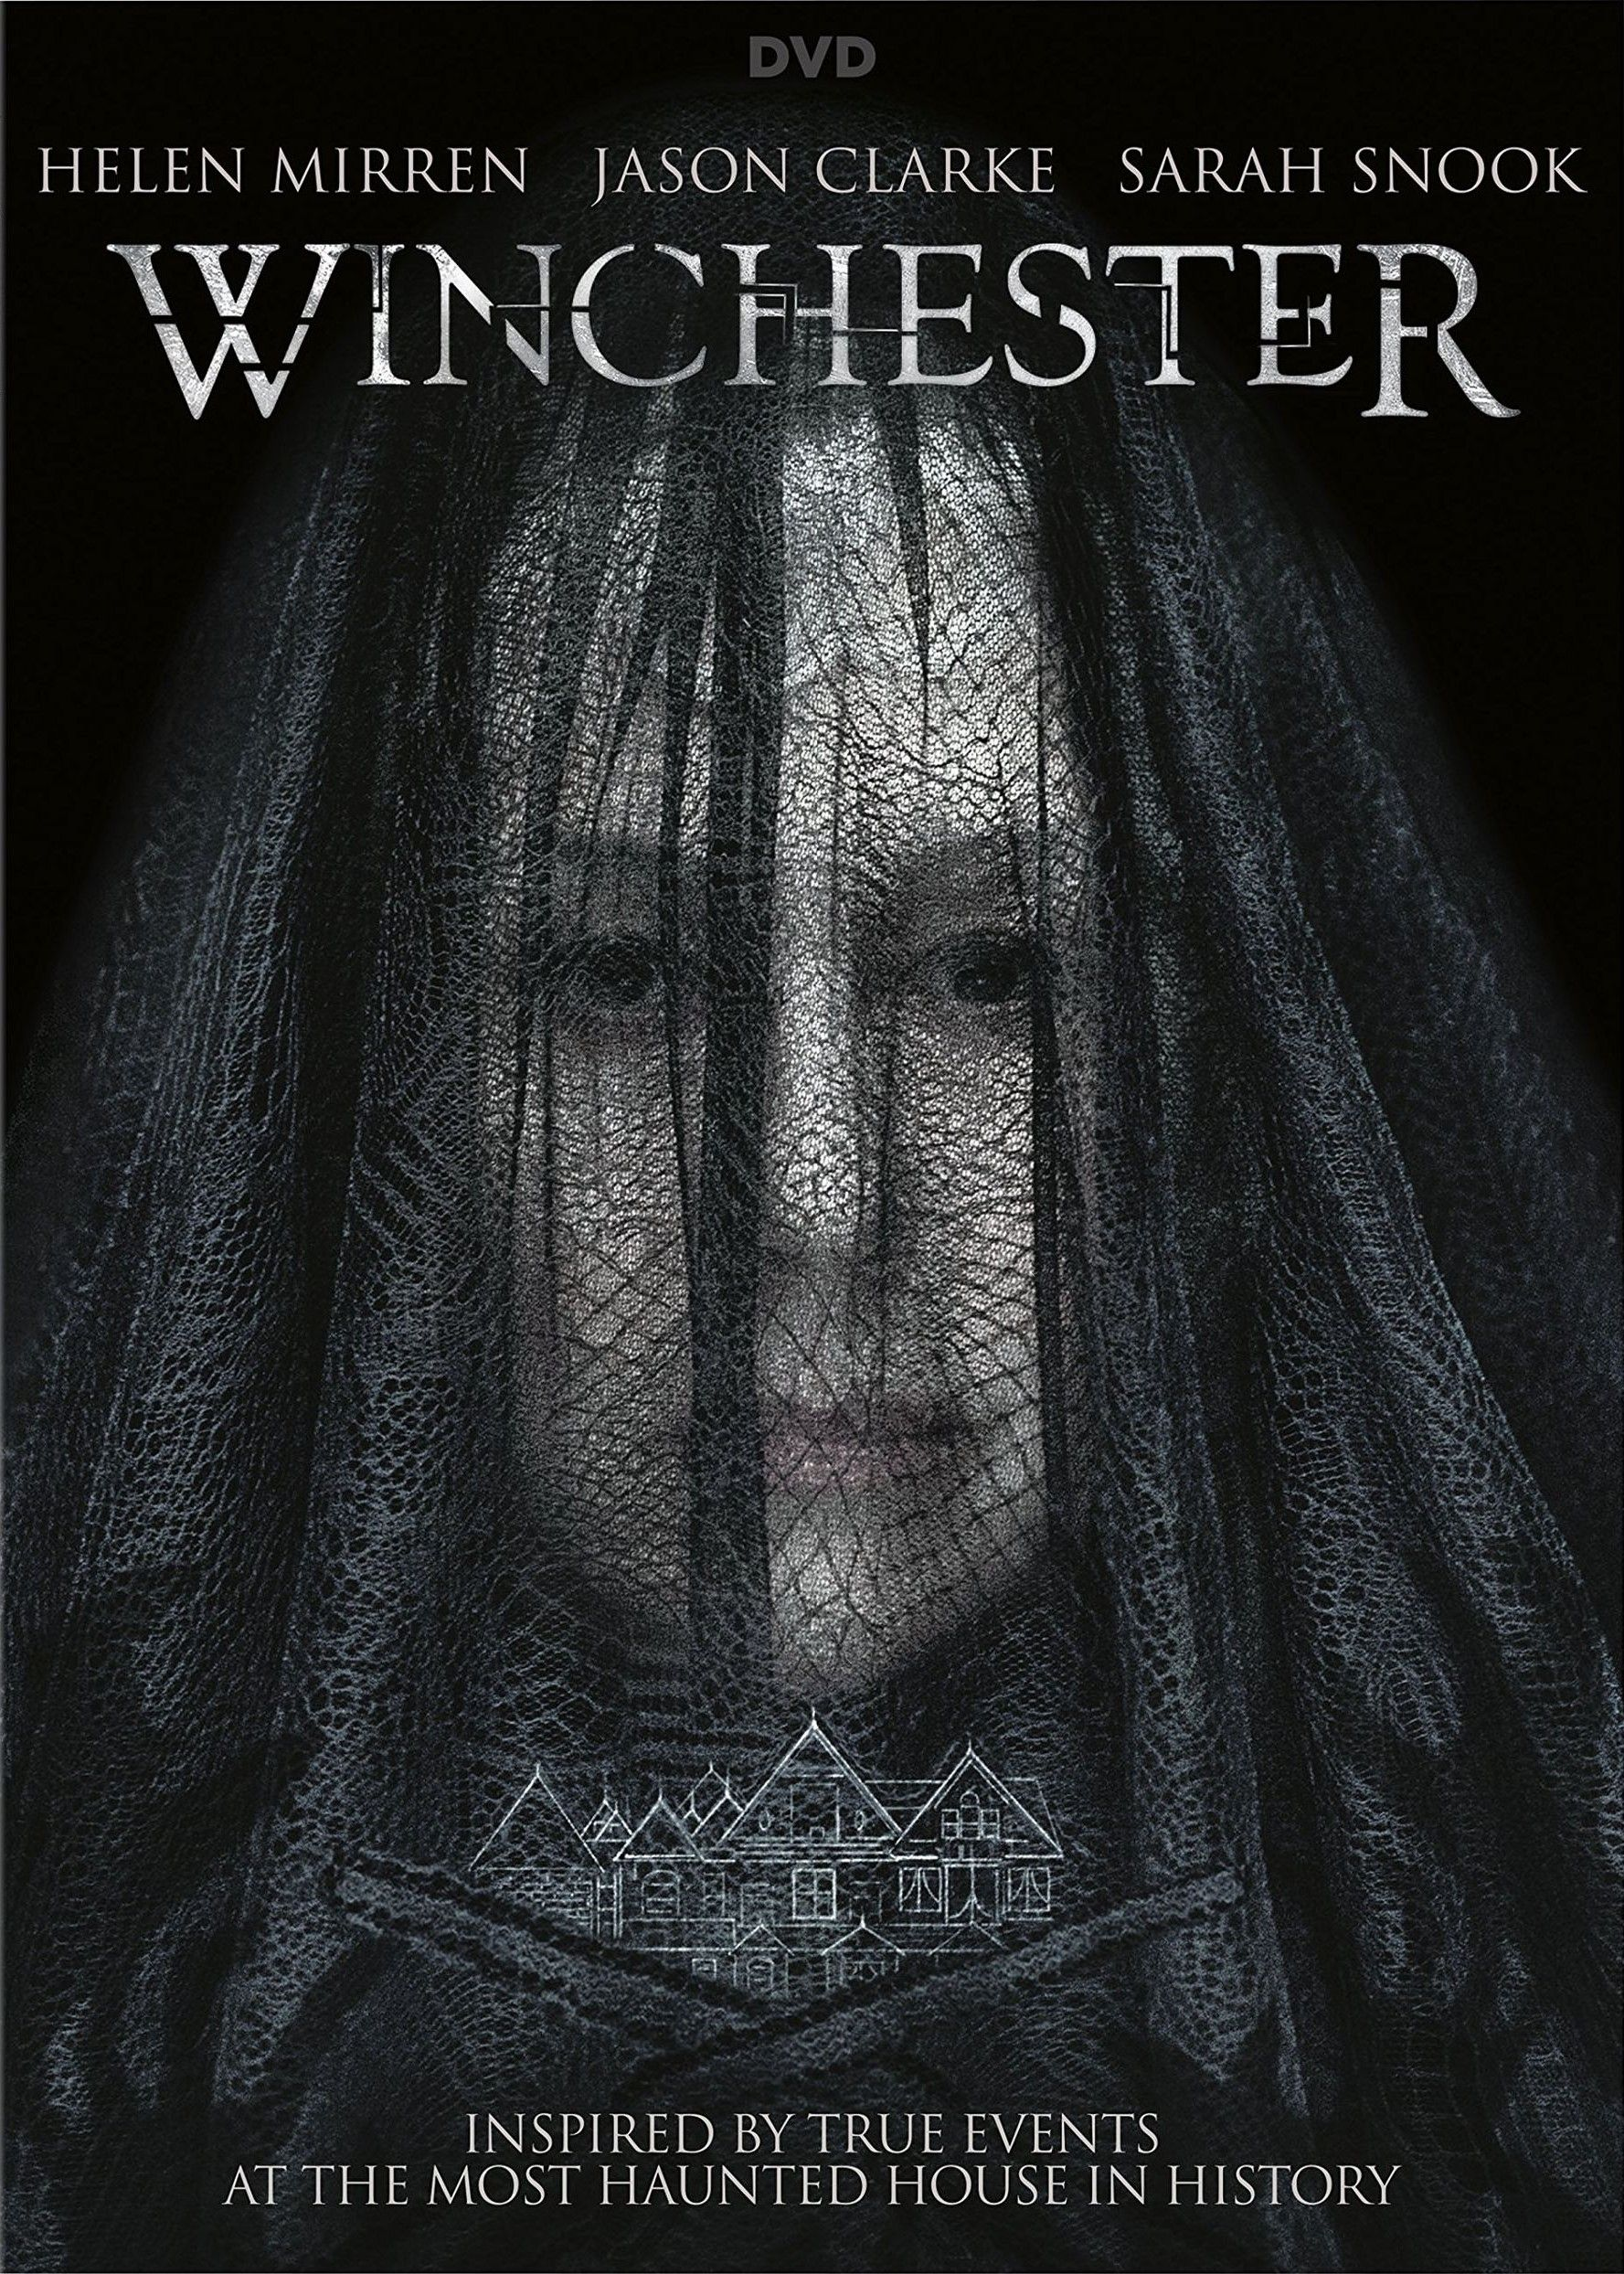 Pin by Aaron Viles on Movies Dvd, Winchester, Blu ray